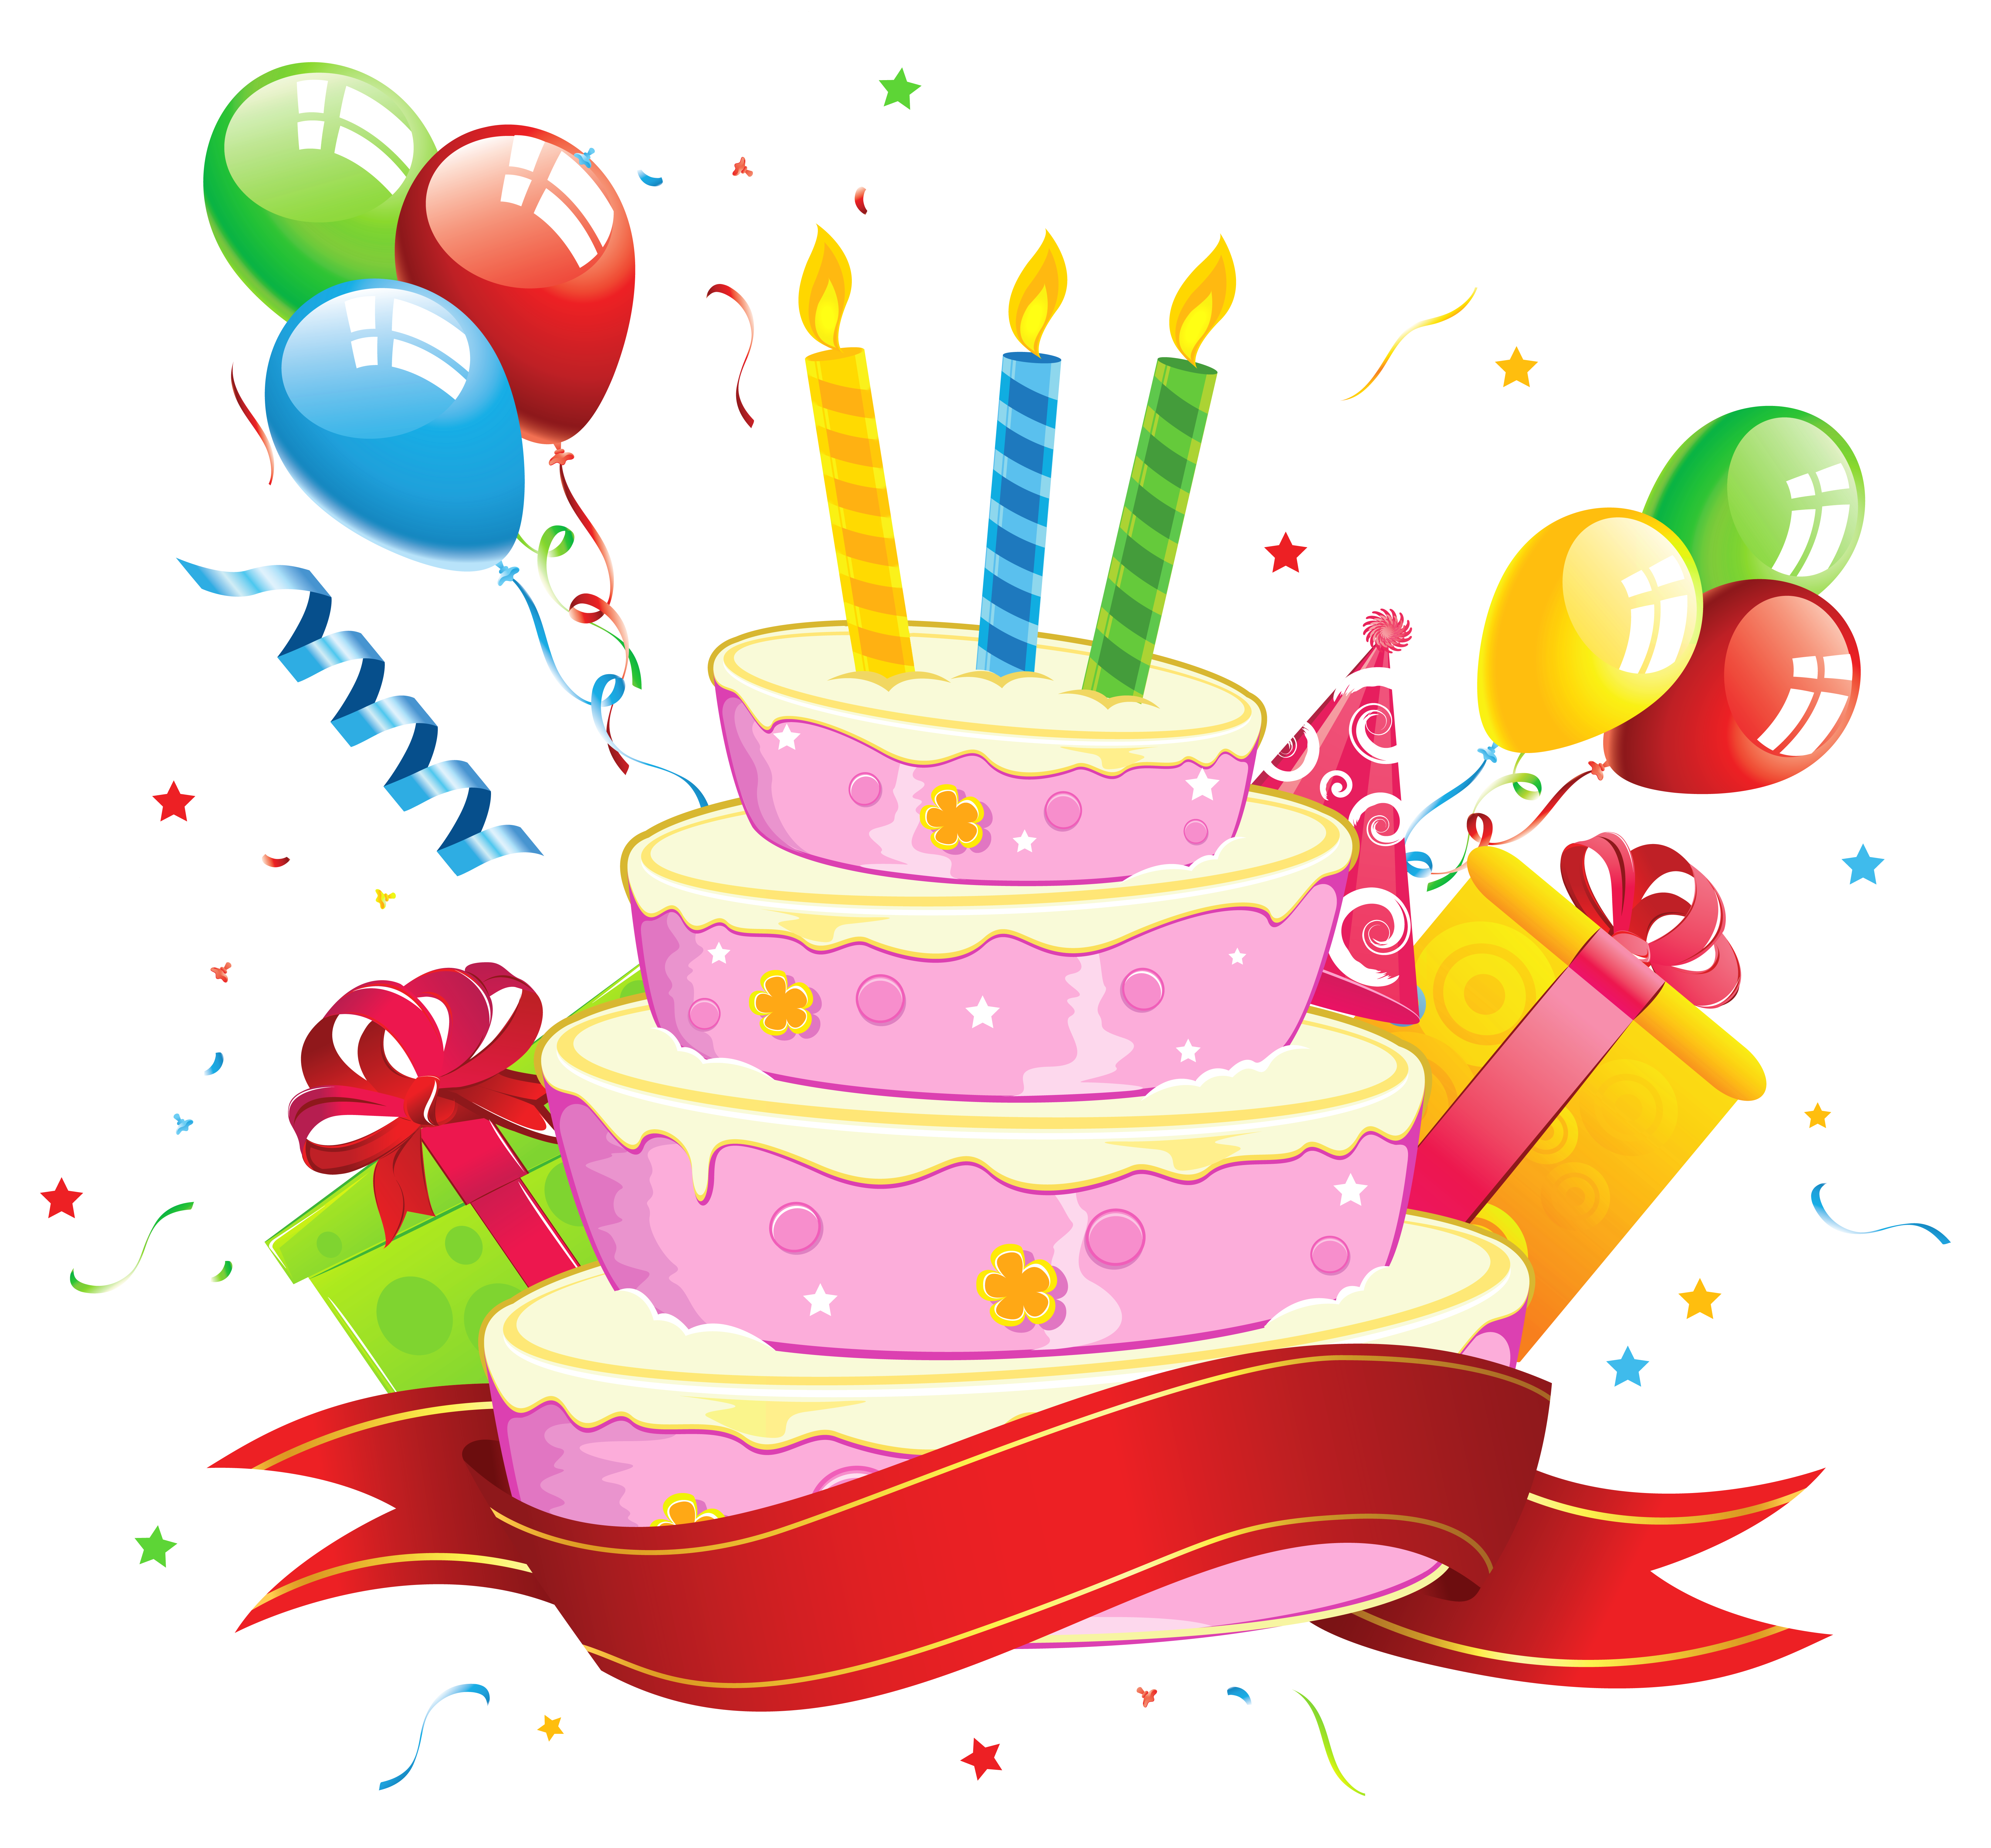 Birthday cake clip art pictures vector freeuse download Free photo: Birthday Cake Clipart - Pie, Clipart, Candles - Free ... vector freeuse download